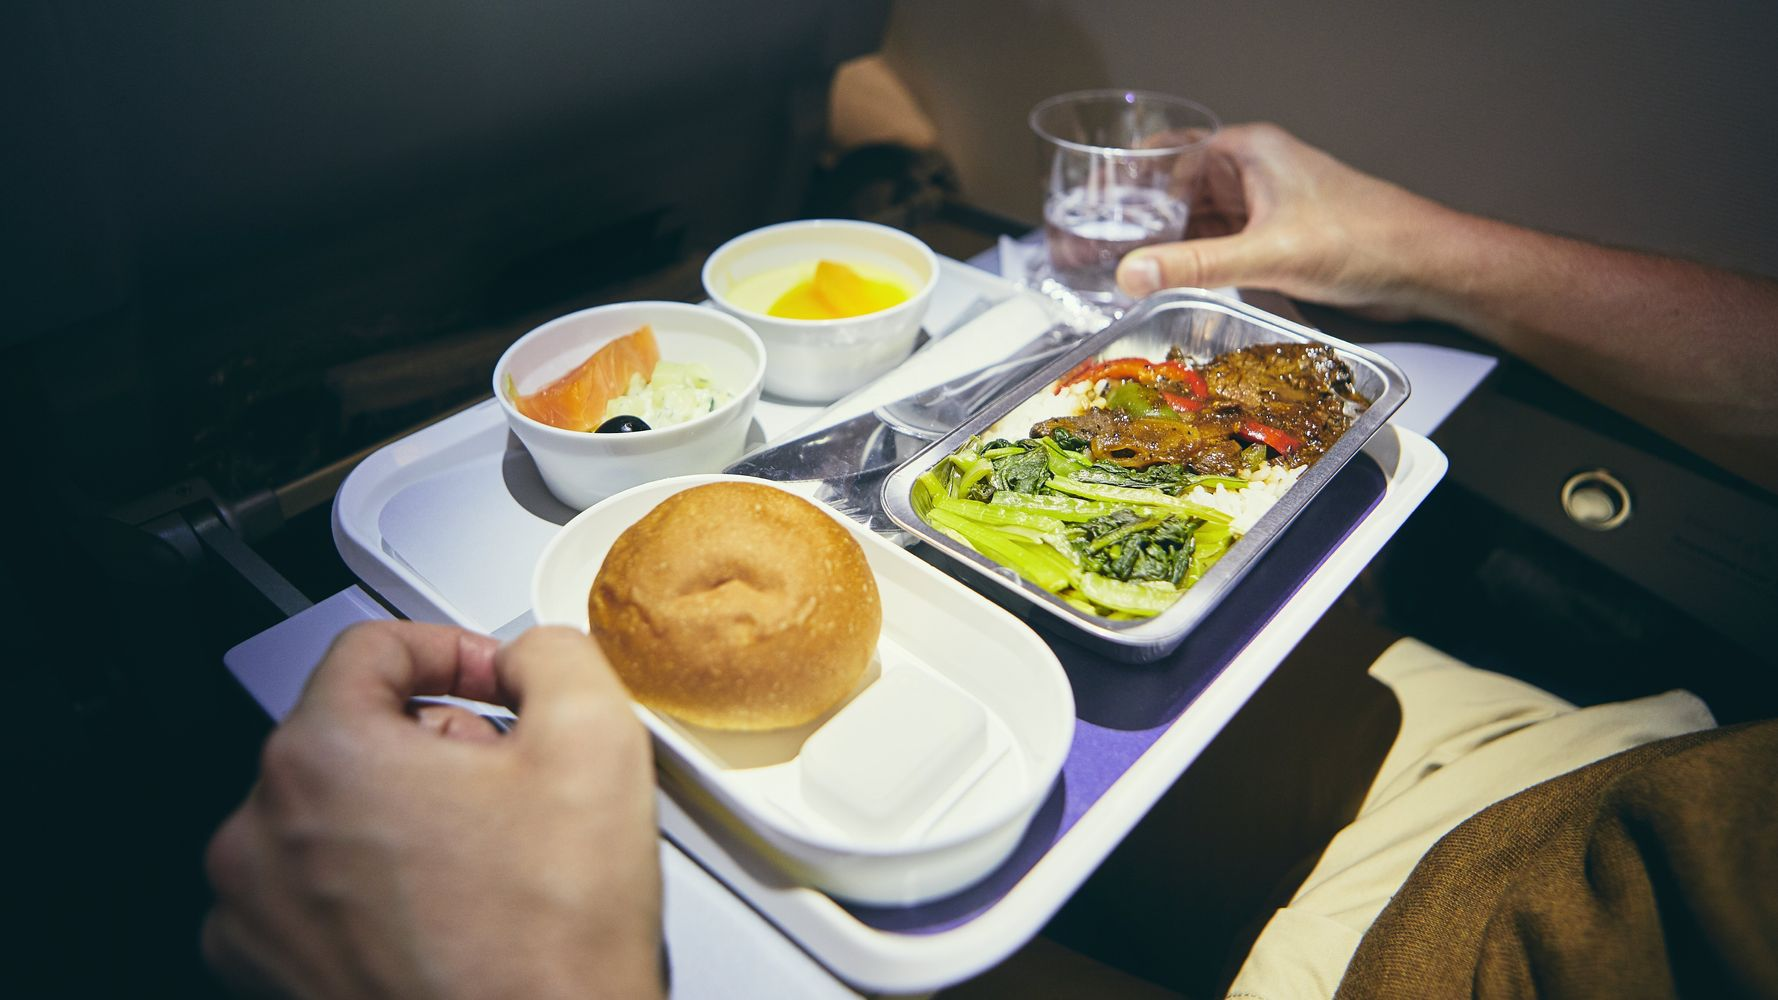 Discarded Plastic And Uneaten Food: The Shameful Story Of Waste On Planes